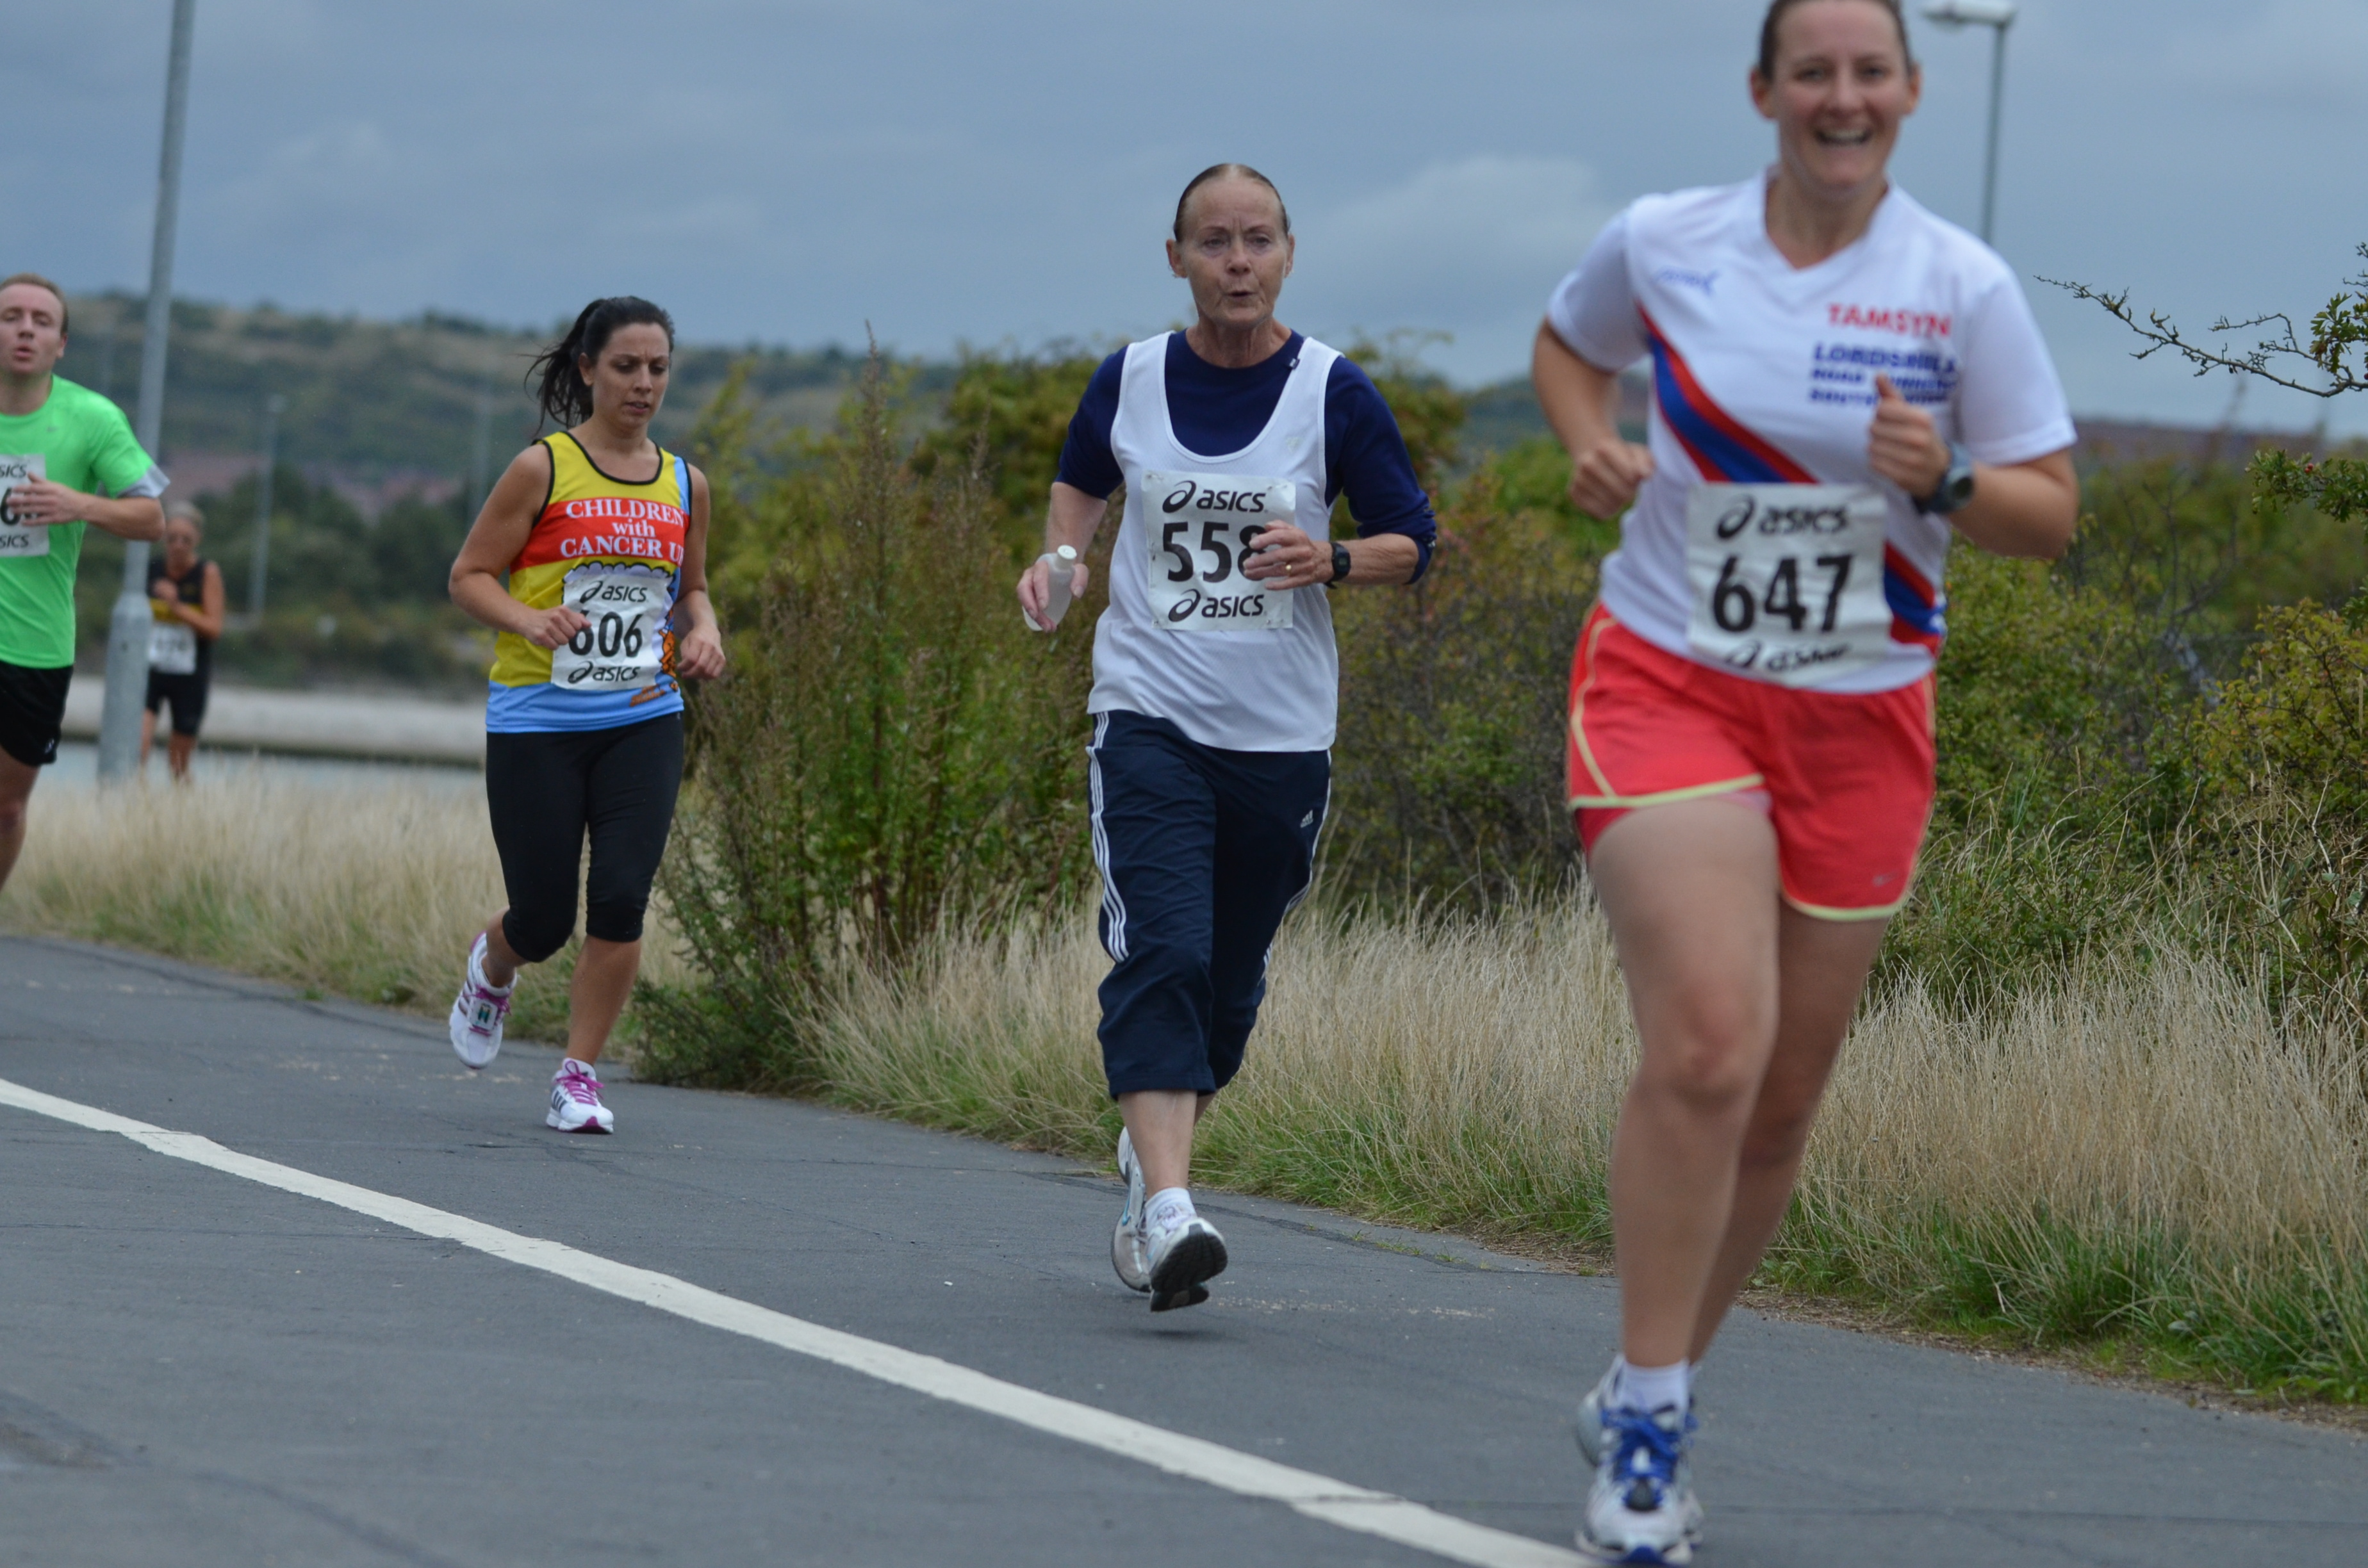 Thanks to Paul Hammond for capturing the pain of the race and my relief at nearing the end!